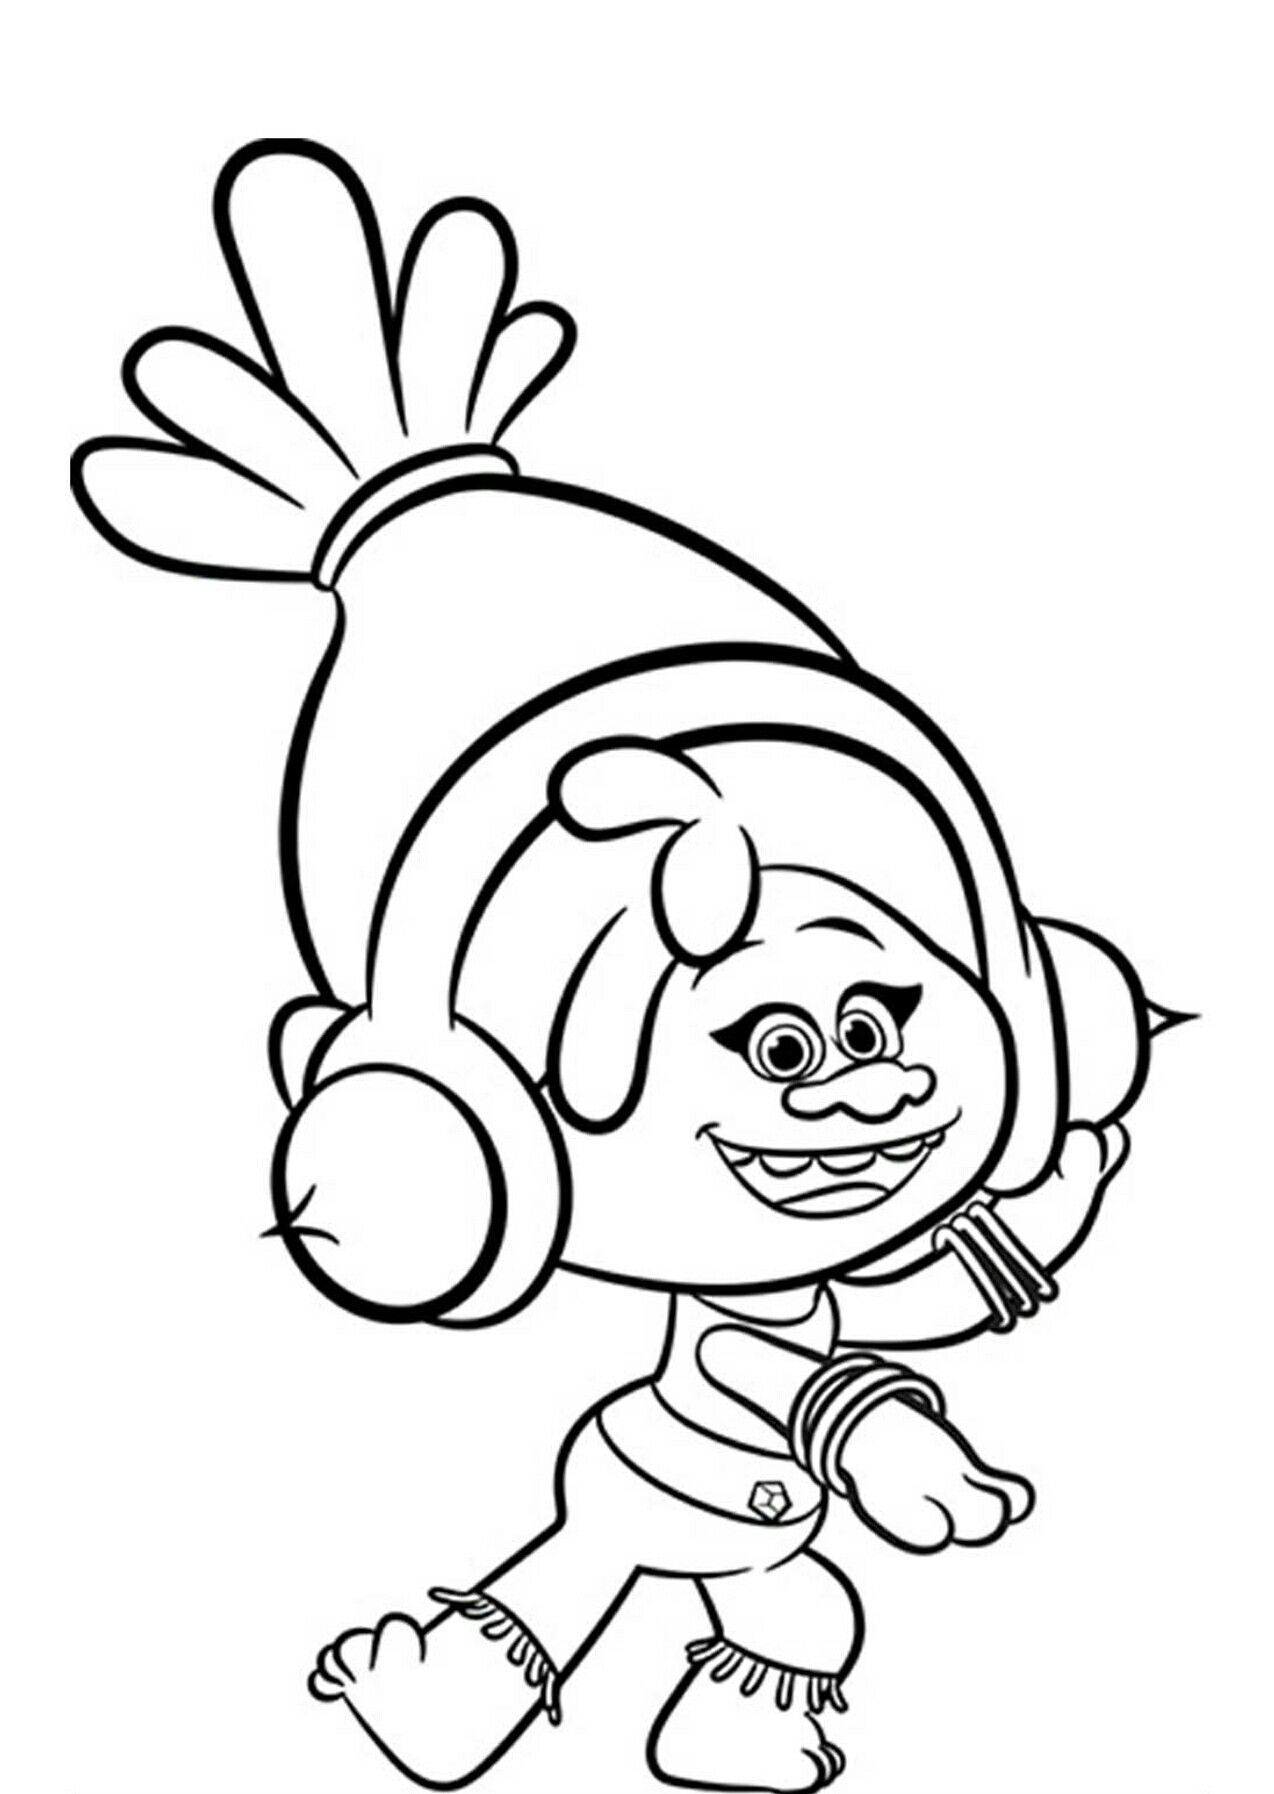 Barbie Coloring Pages Google Search In 2021 Monster Coloring Pages Cartoon Coloring Pages Barbie Coloring Pages [ 1794 x 1274 Pixel ]